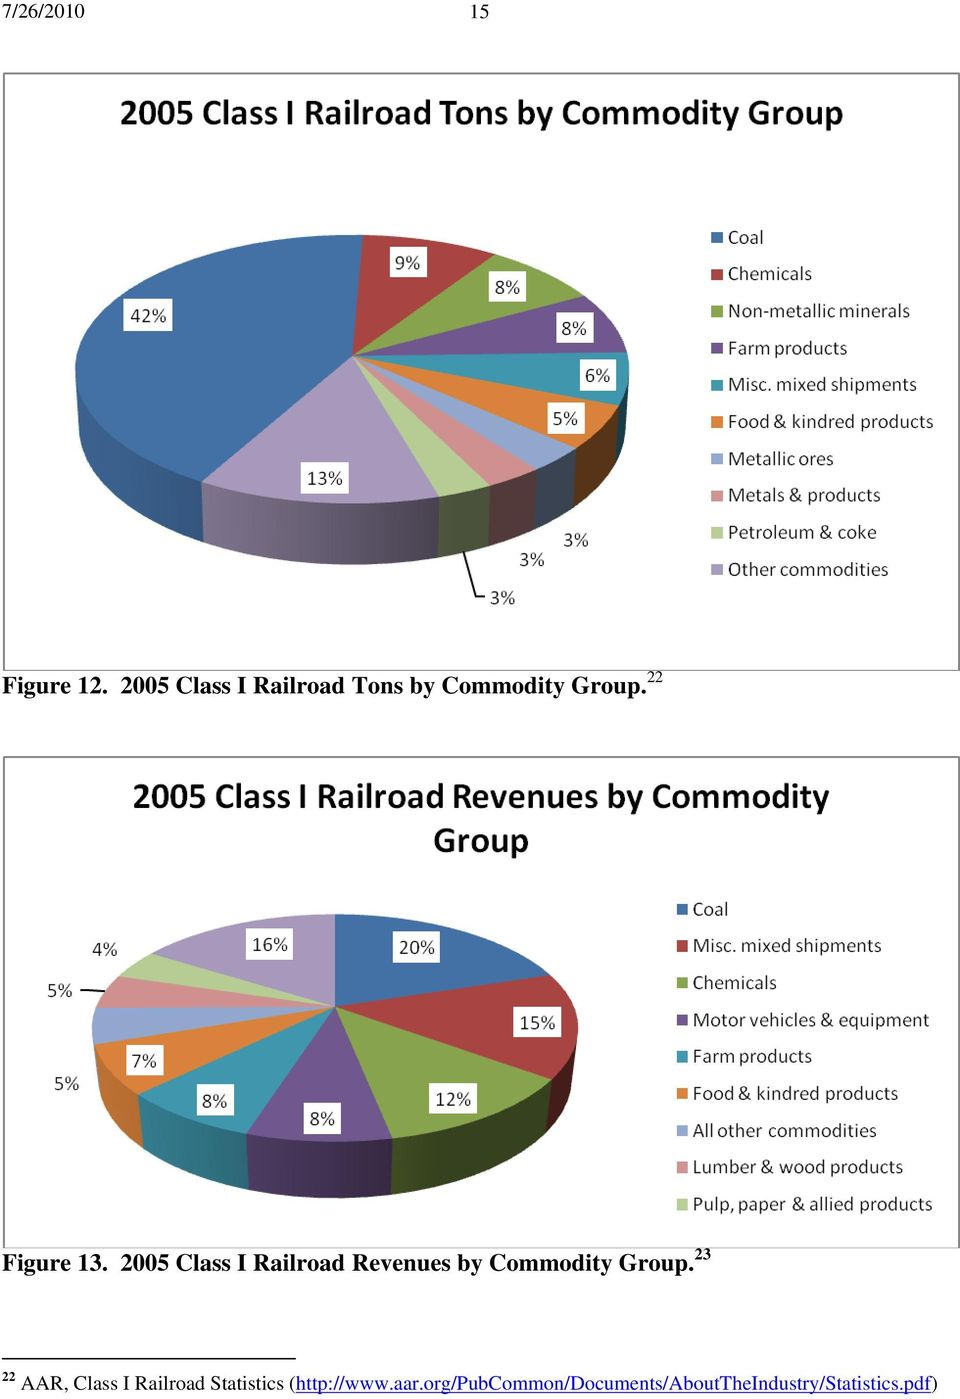 2005 Class I Railroad Revenues by Commodity Group.